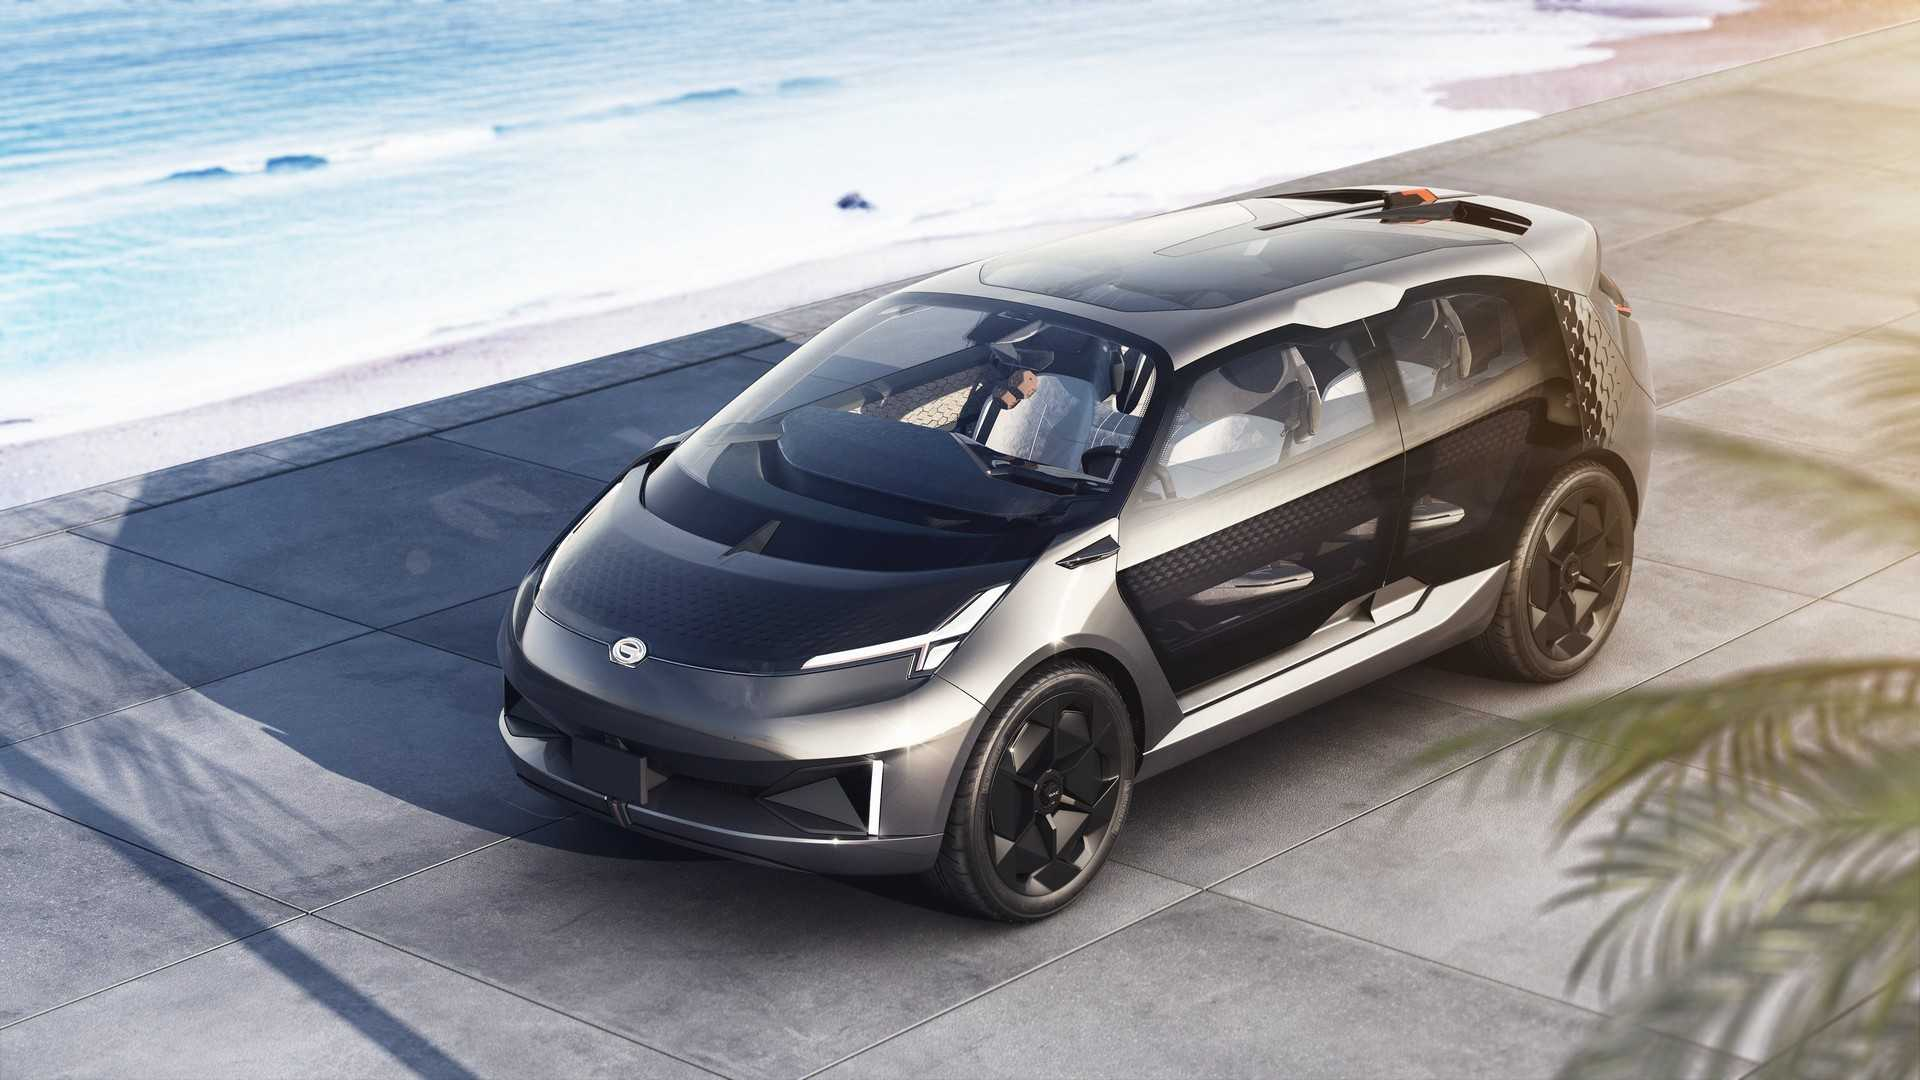 Concept Cars 2019: GAC Motor Shows Electric Three-row Minivan Concept, Delays